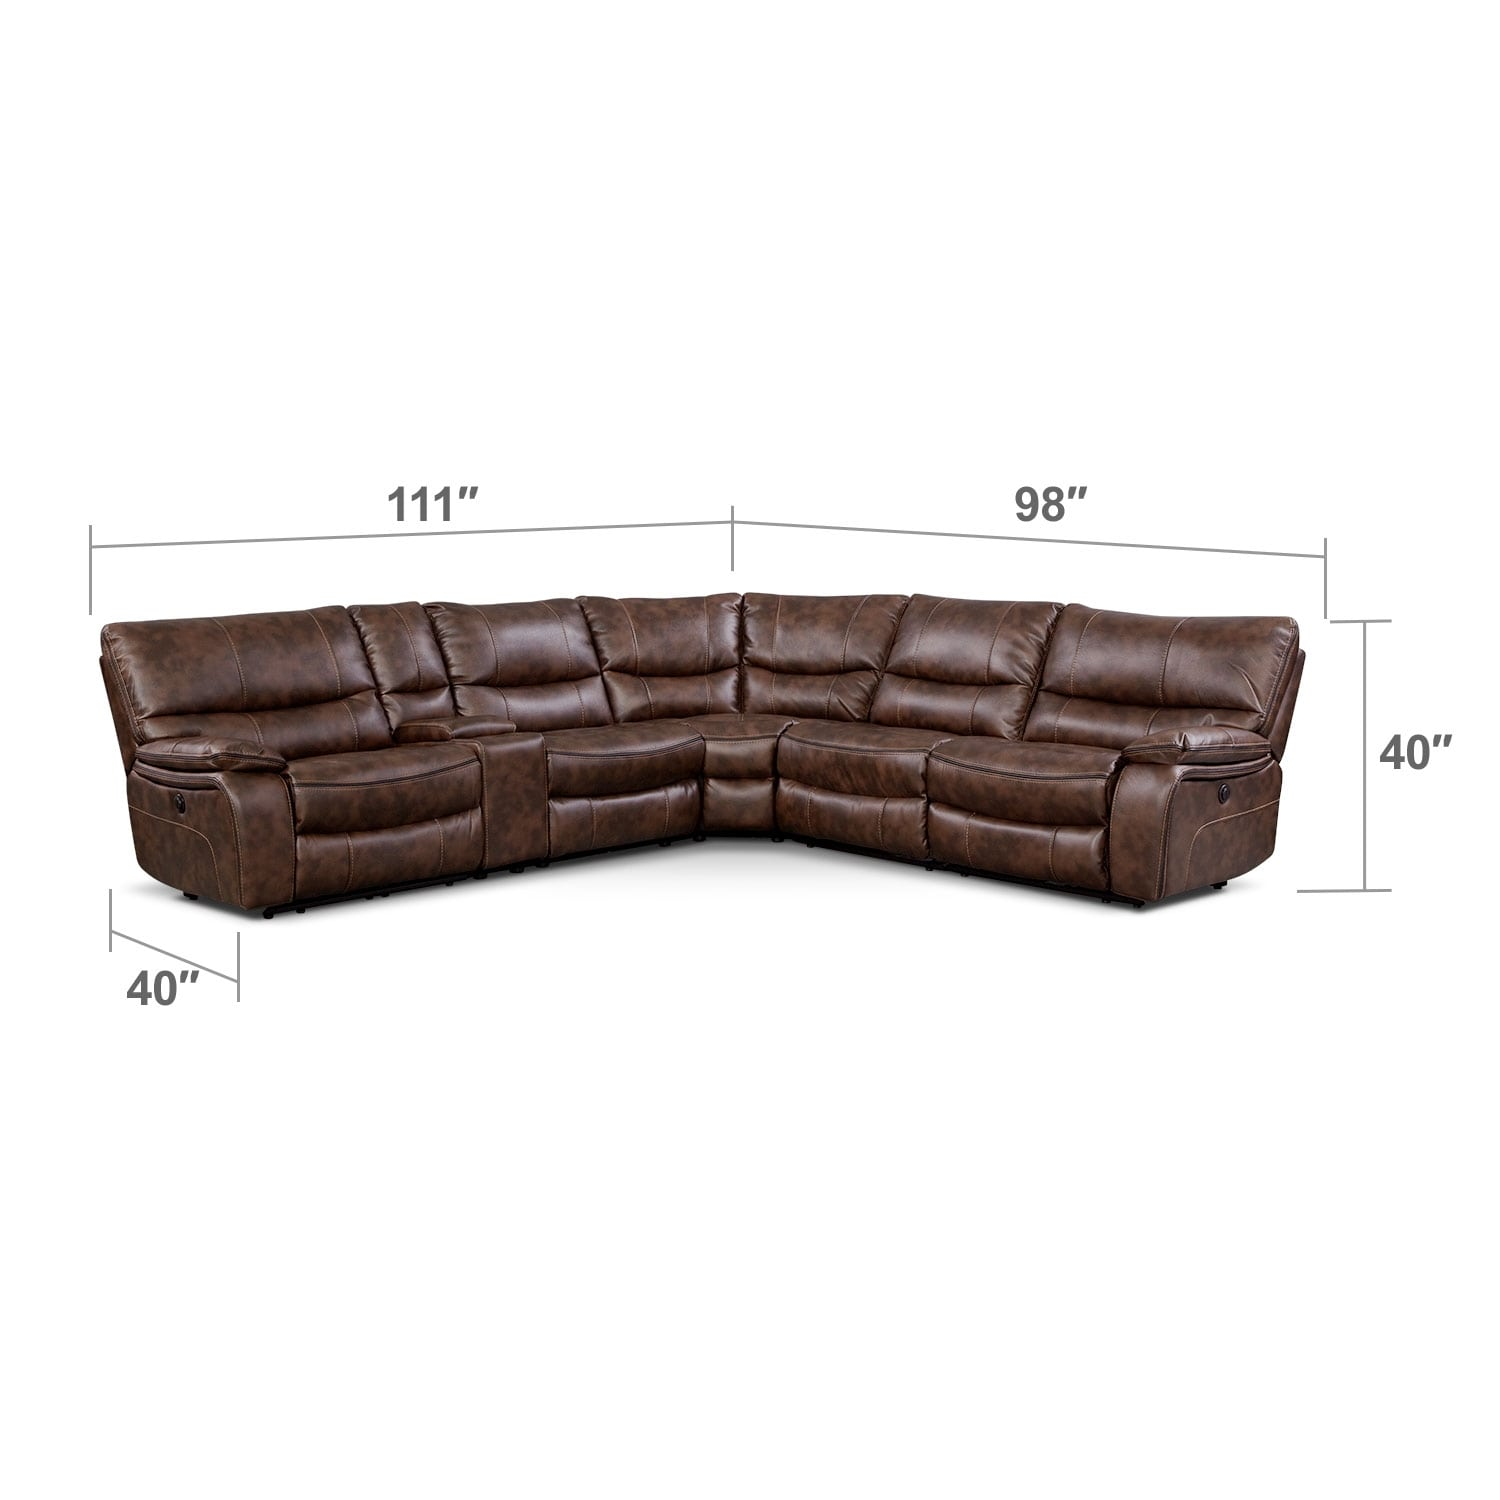 Living Room Furniture - Orlando 6-Piece Power Reclining Sectional w/ 1 Stationary Chair - Brown